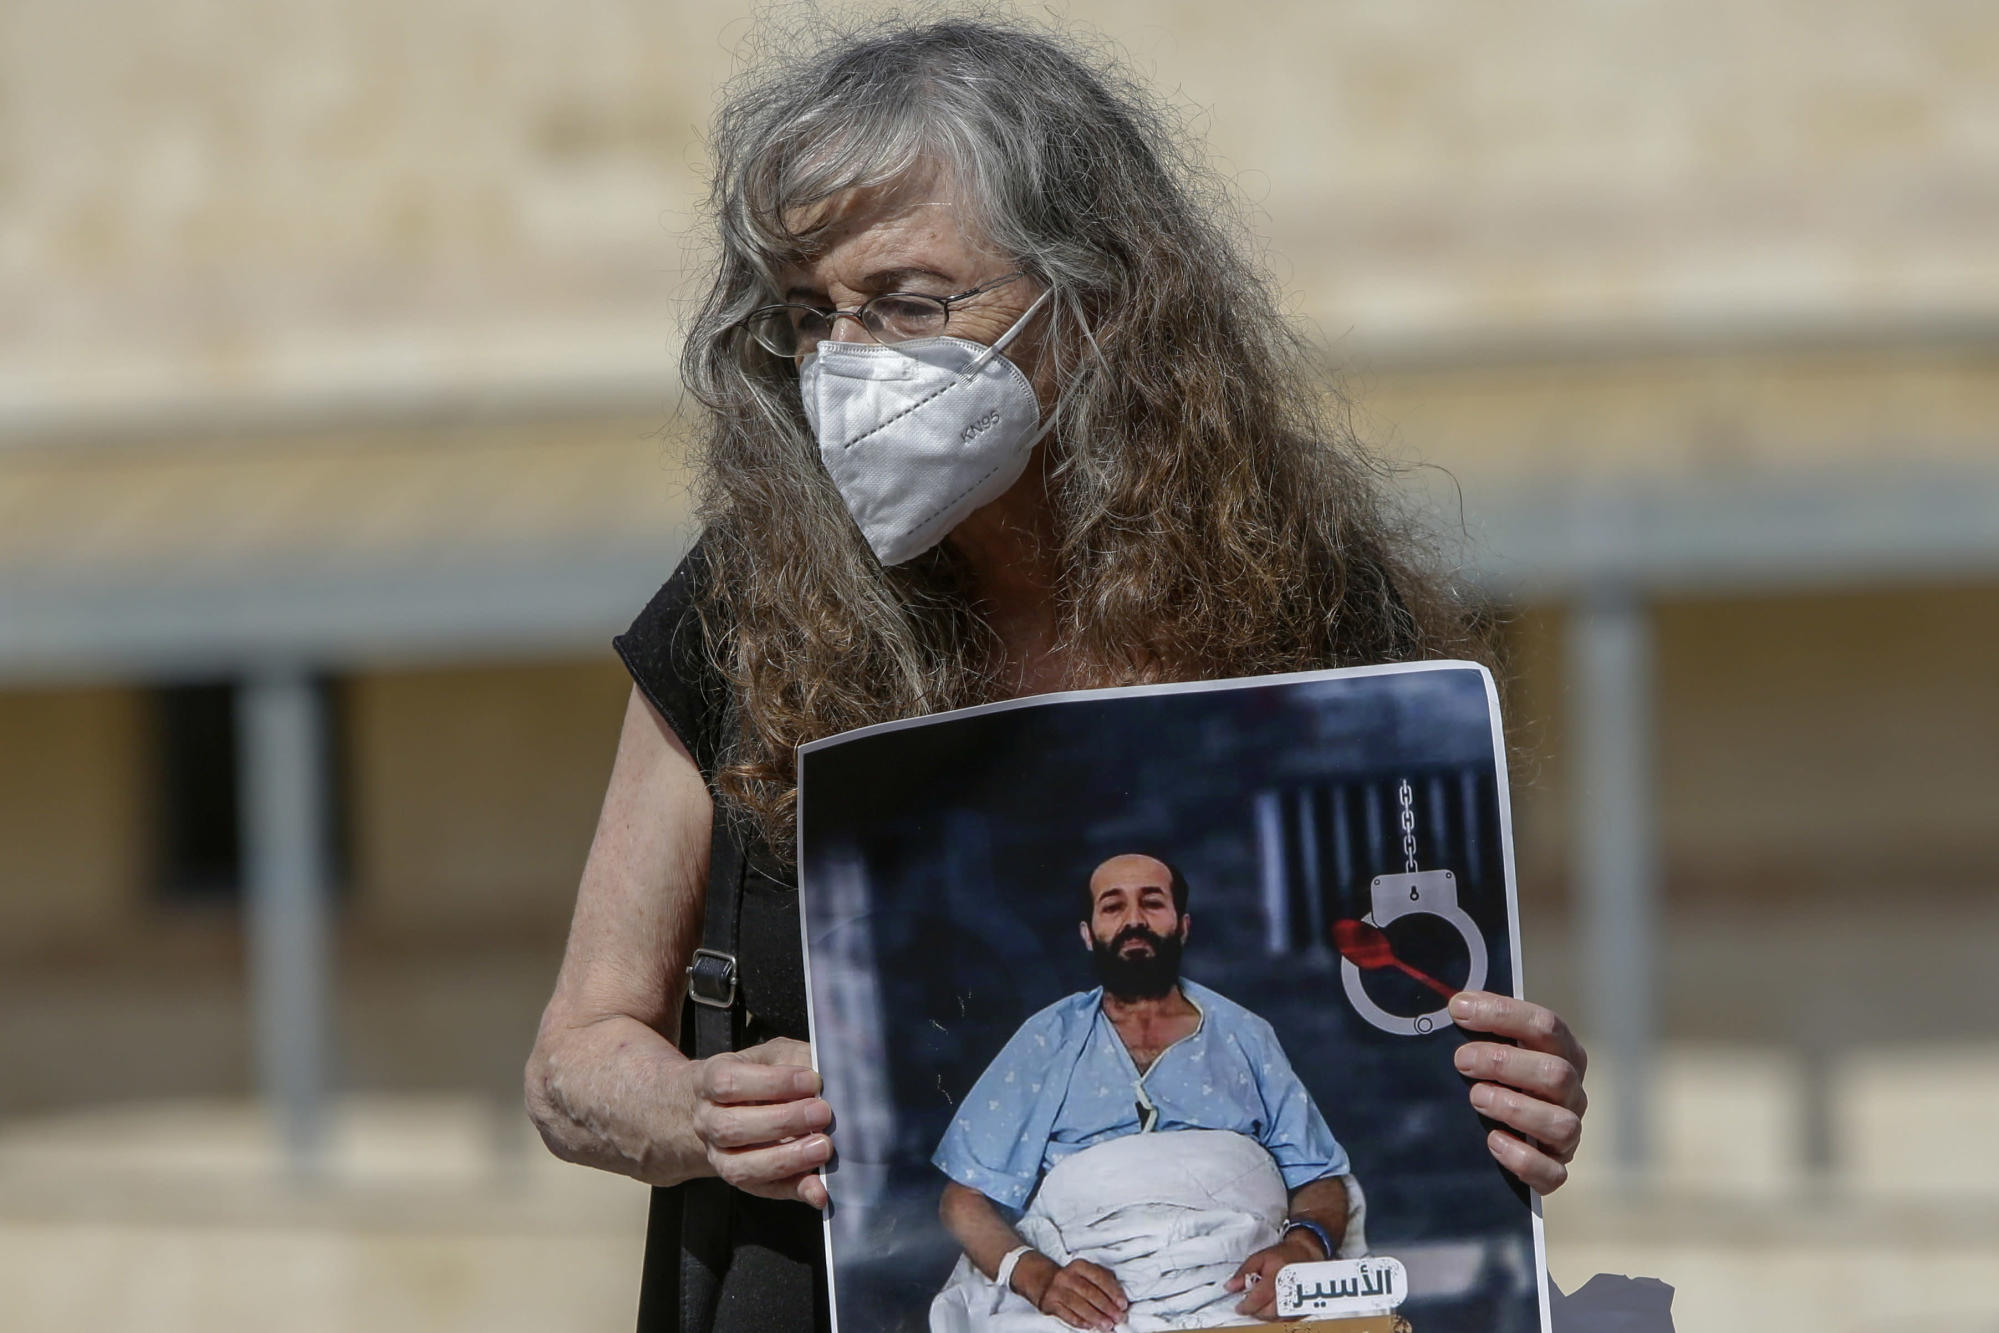 Palestinian in Israel prison ends 100-plus day hunger strike